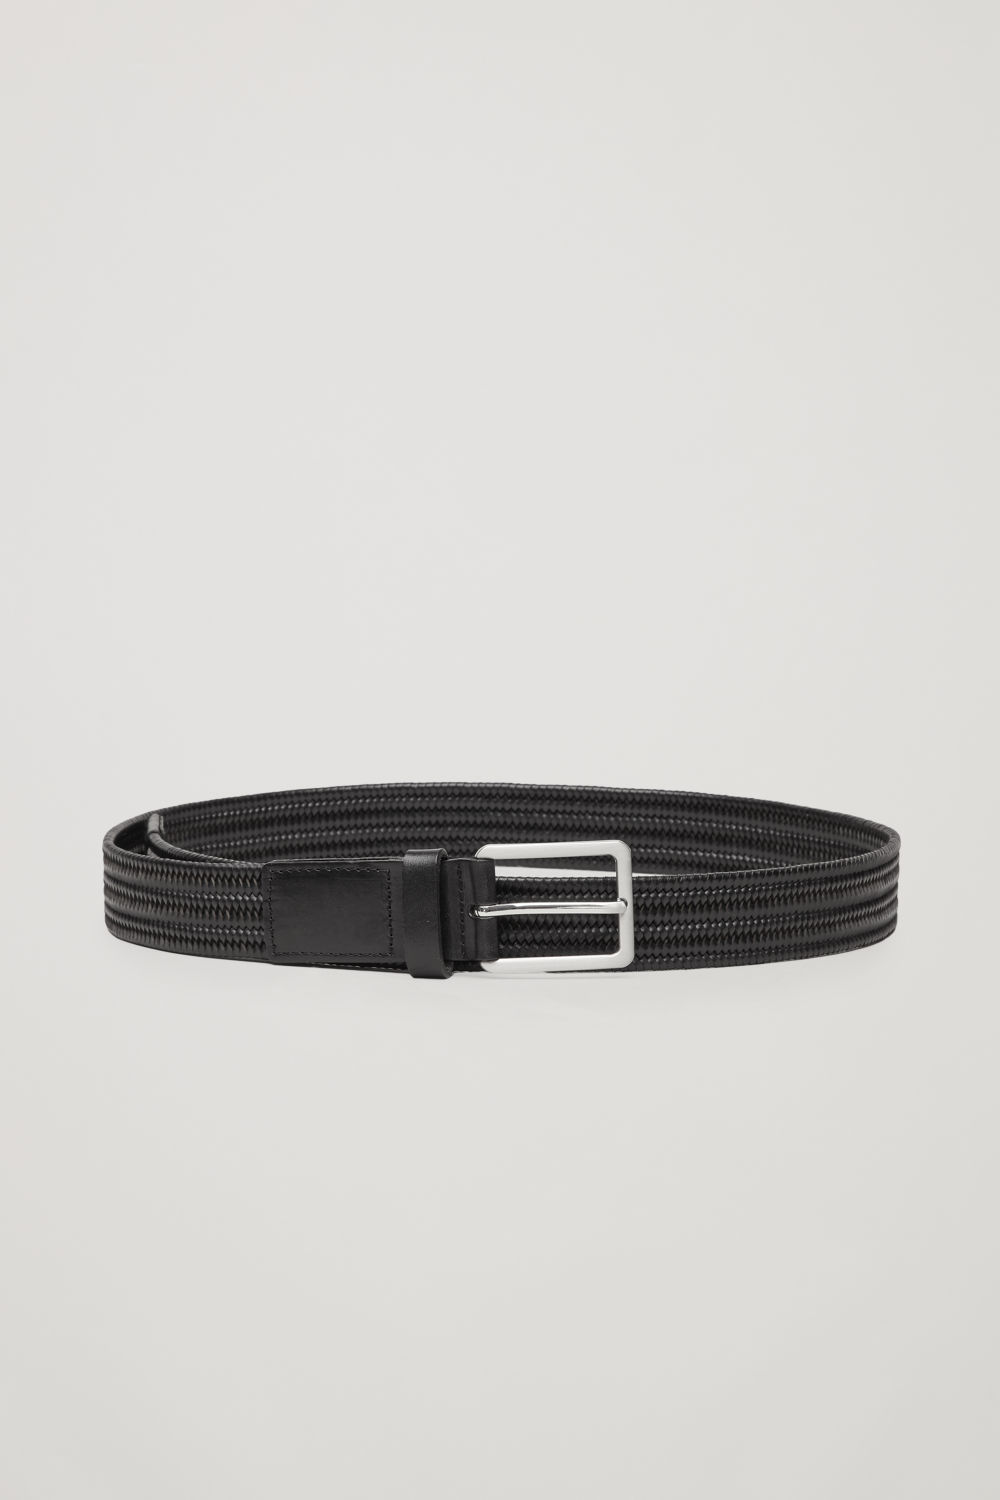 코스 COS ELASTIC BRAIDED LEATHER BELT,Black